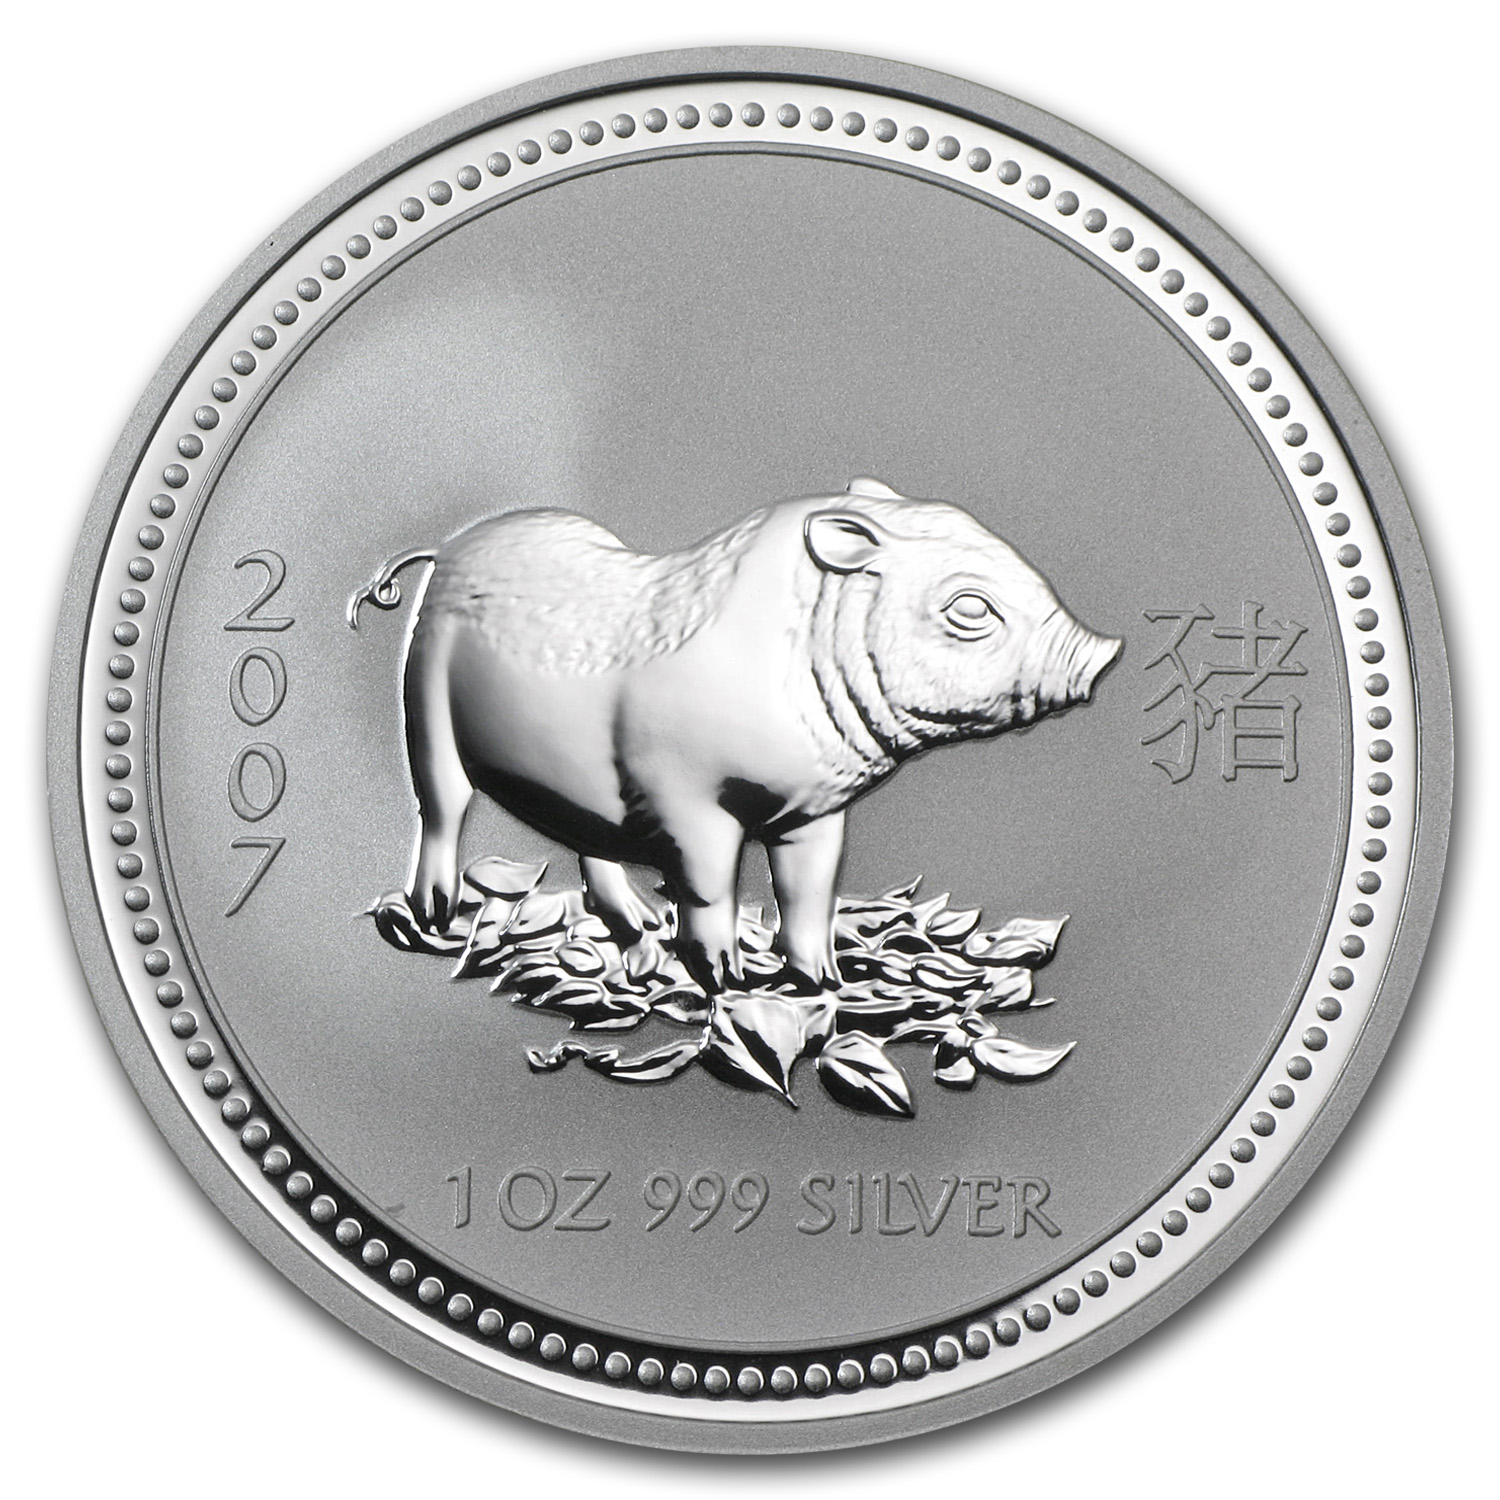 2007 1 oz Silver Australian Year of the Pig BU